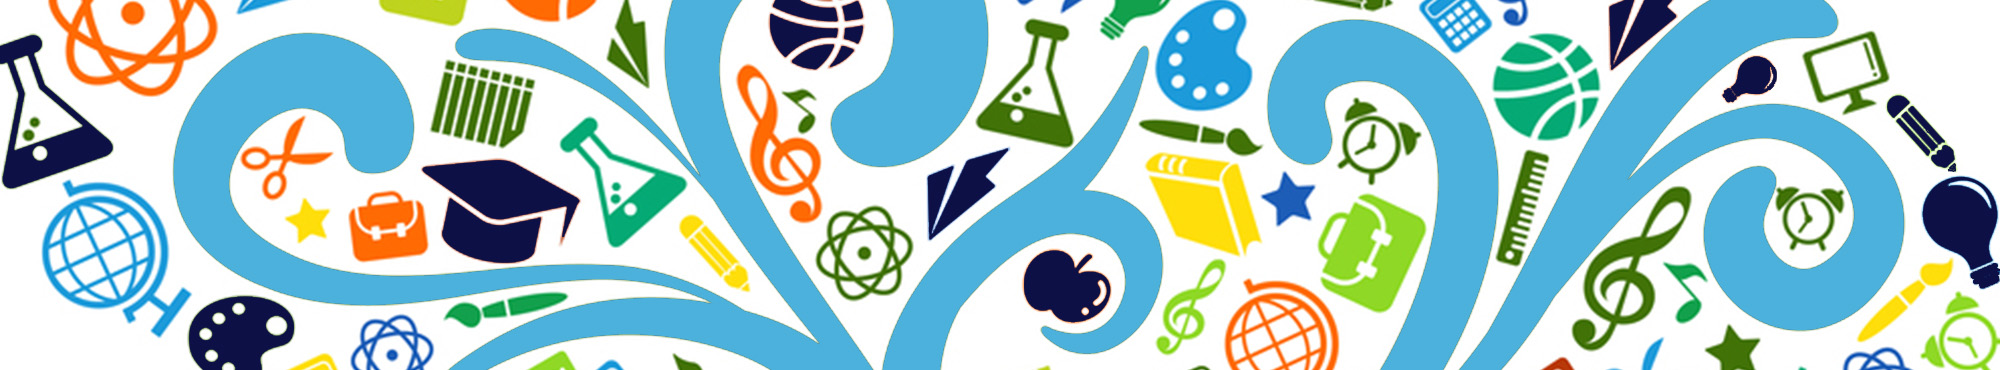 Colorful science and art educational concept